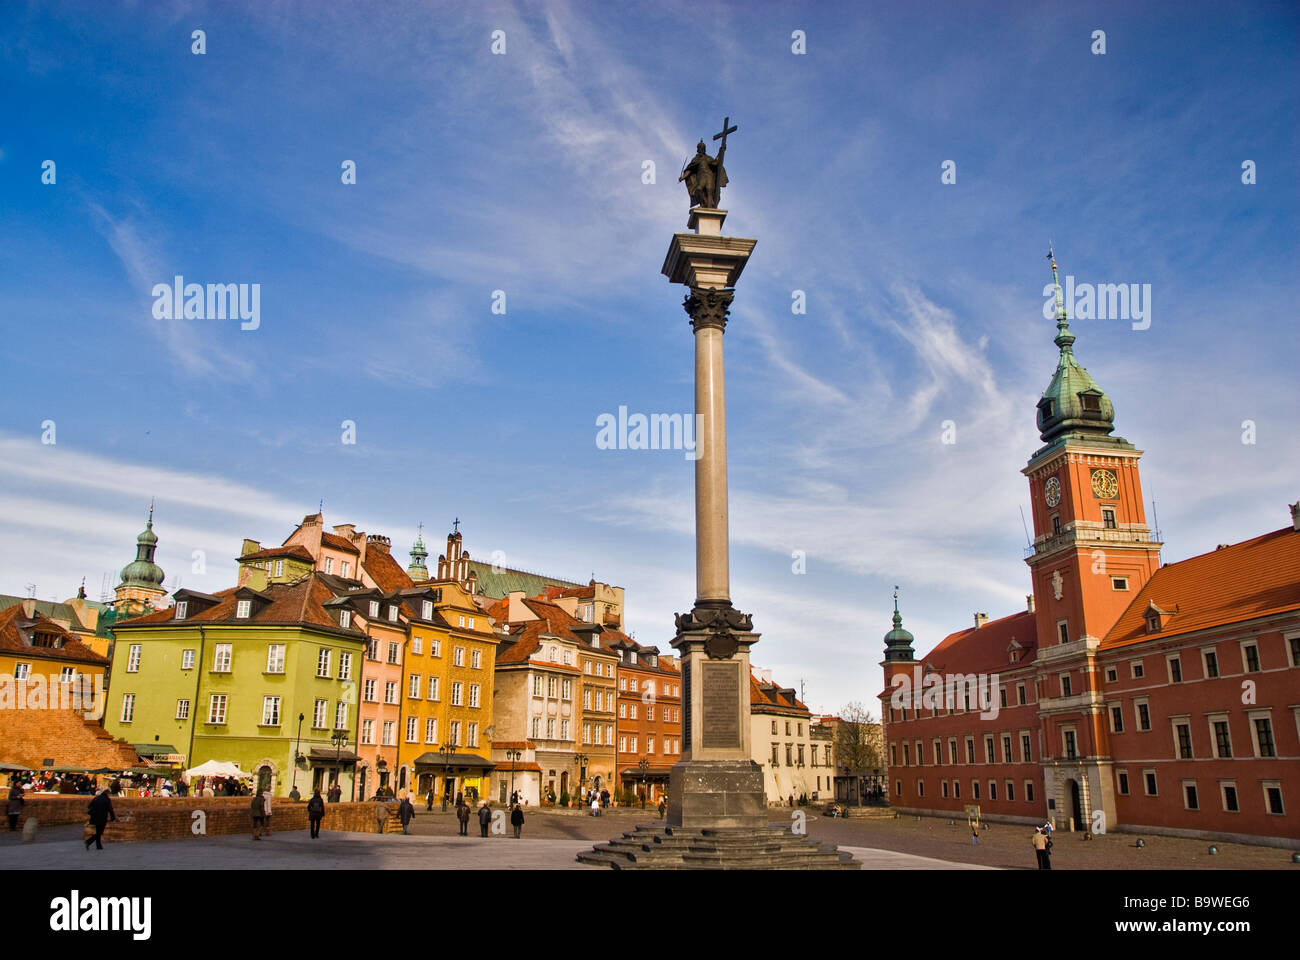 Zygmunt´s column in the Zamkowy square. Warsaw city center. Poland, Europe. Stock Photo